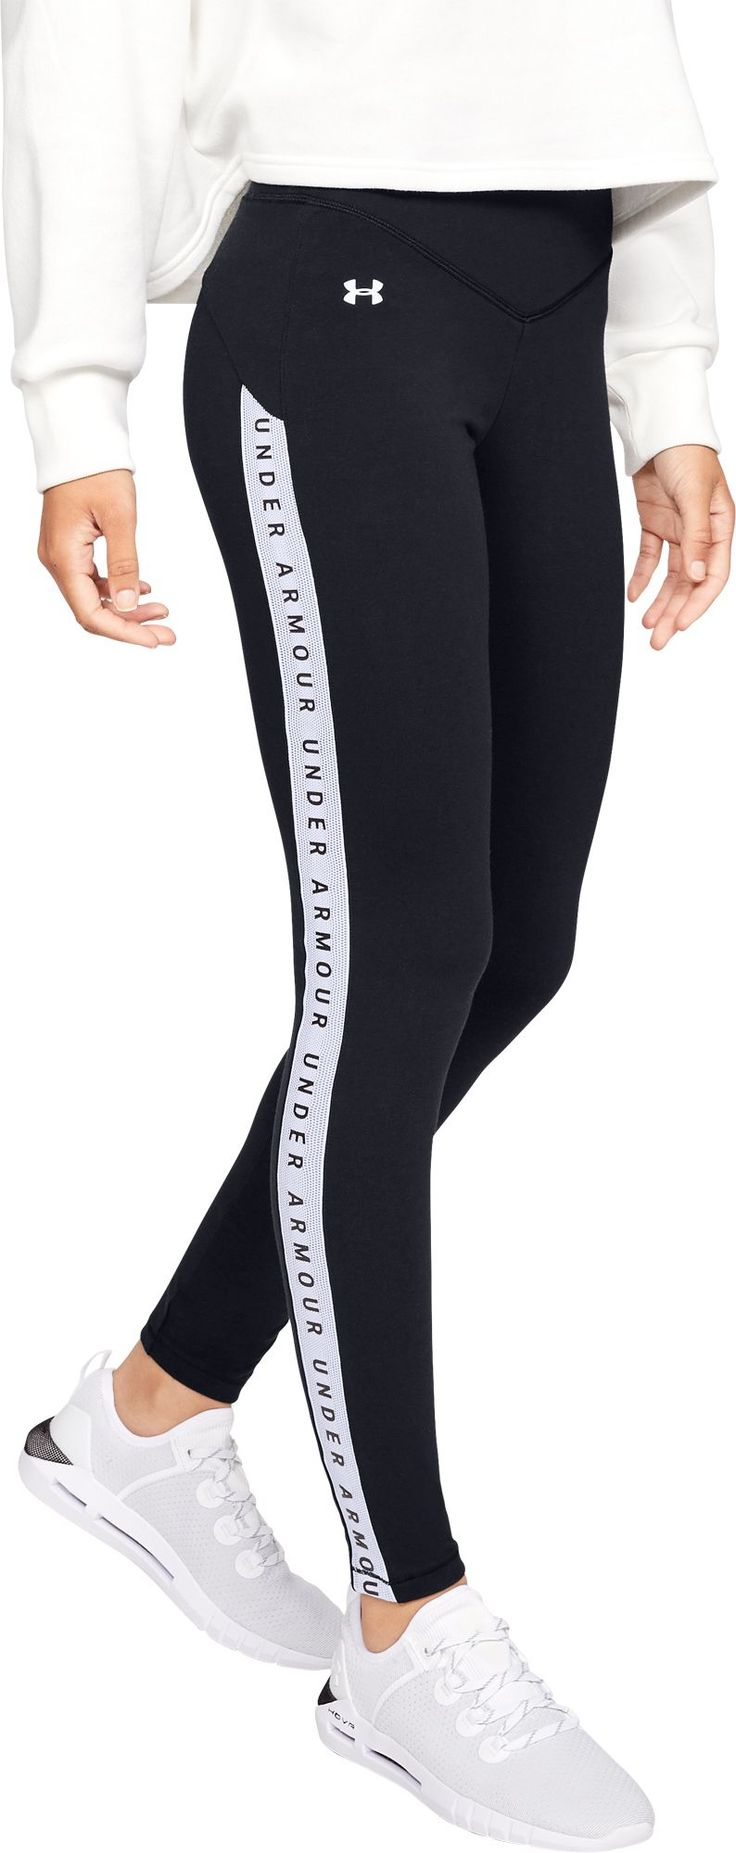 Under Armour Women's Taped Favorite Leggings, Size: XS, Black